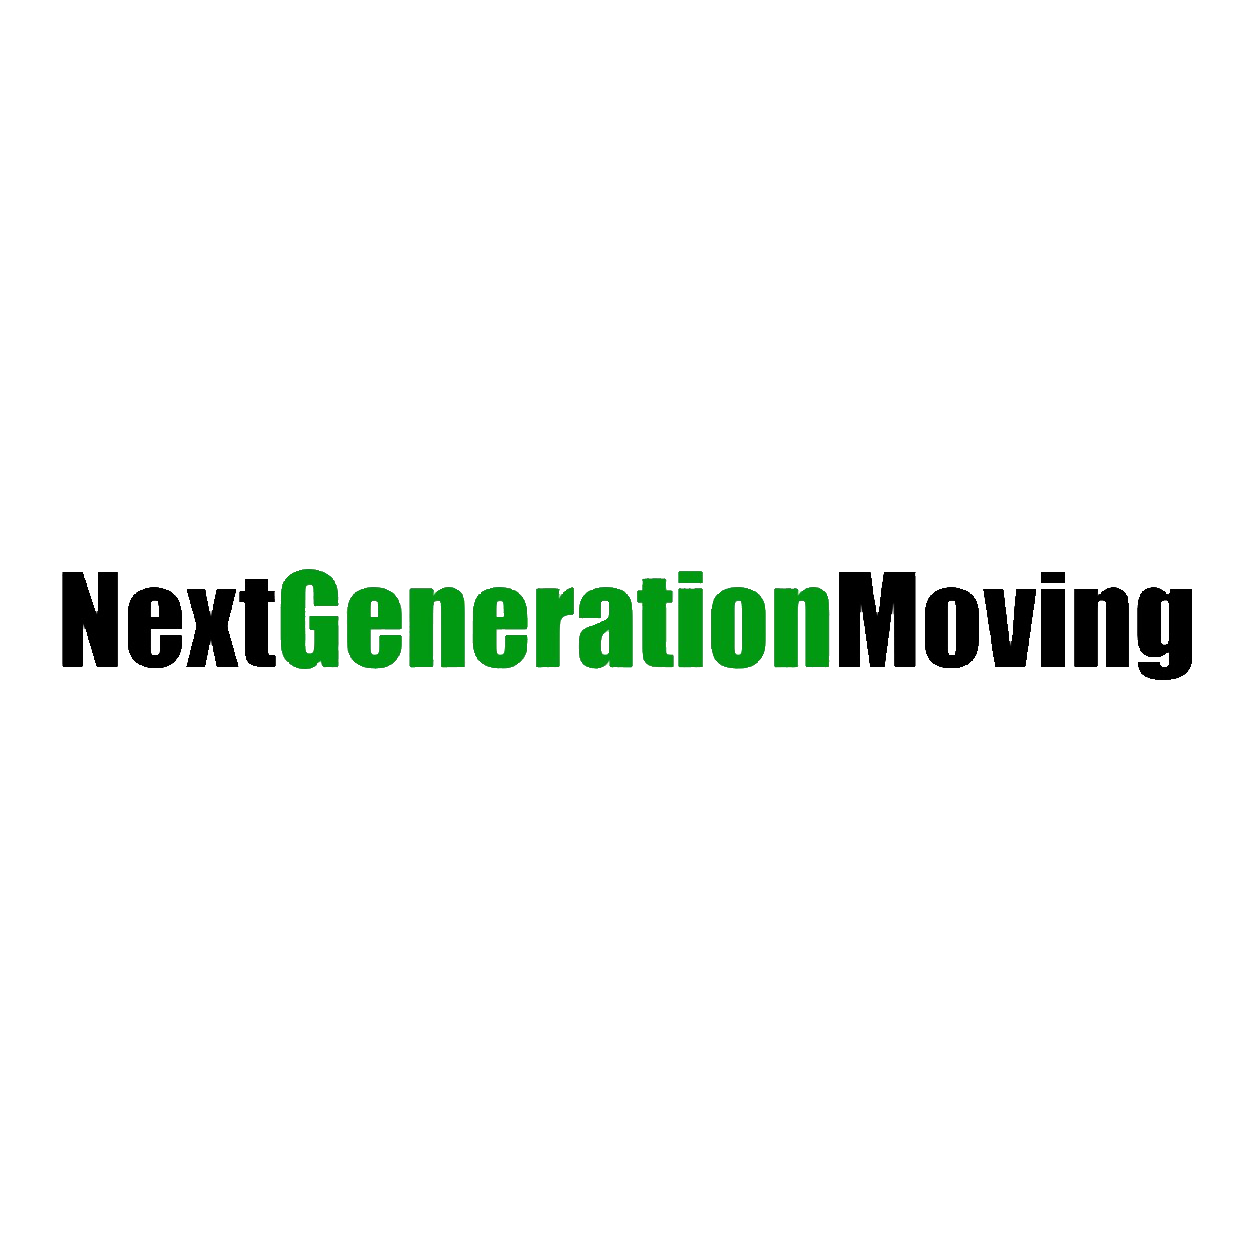 Next Generation Moving